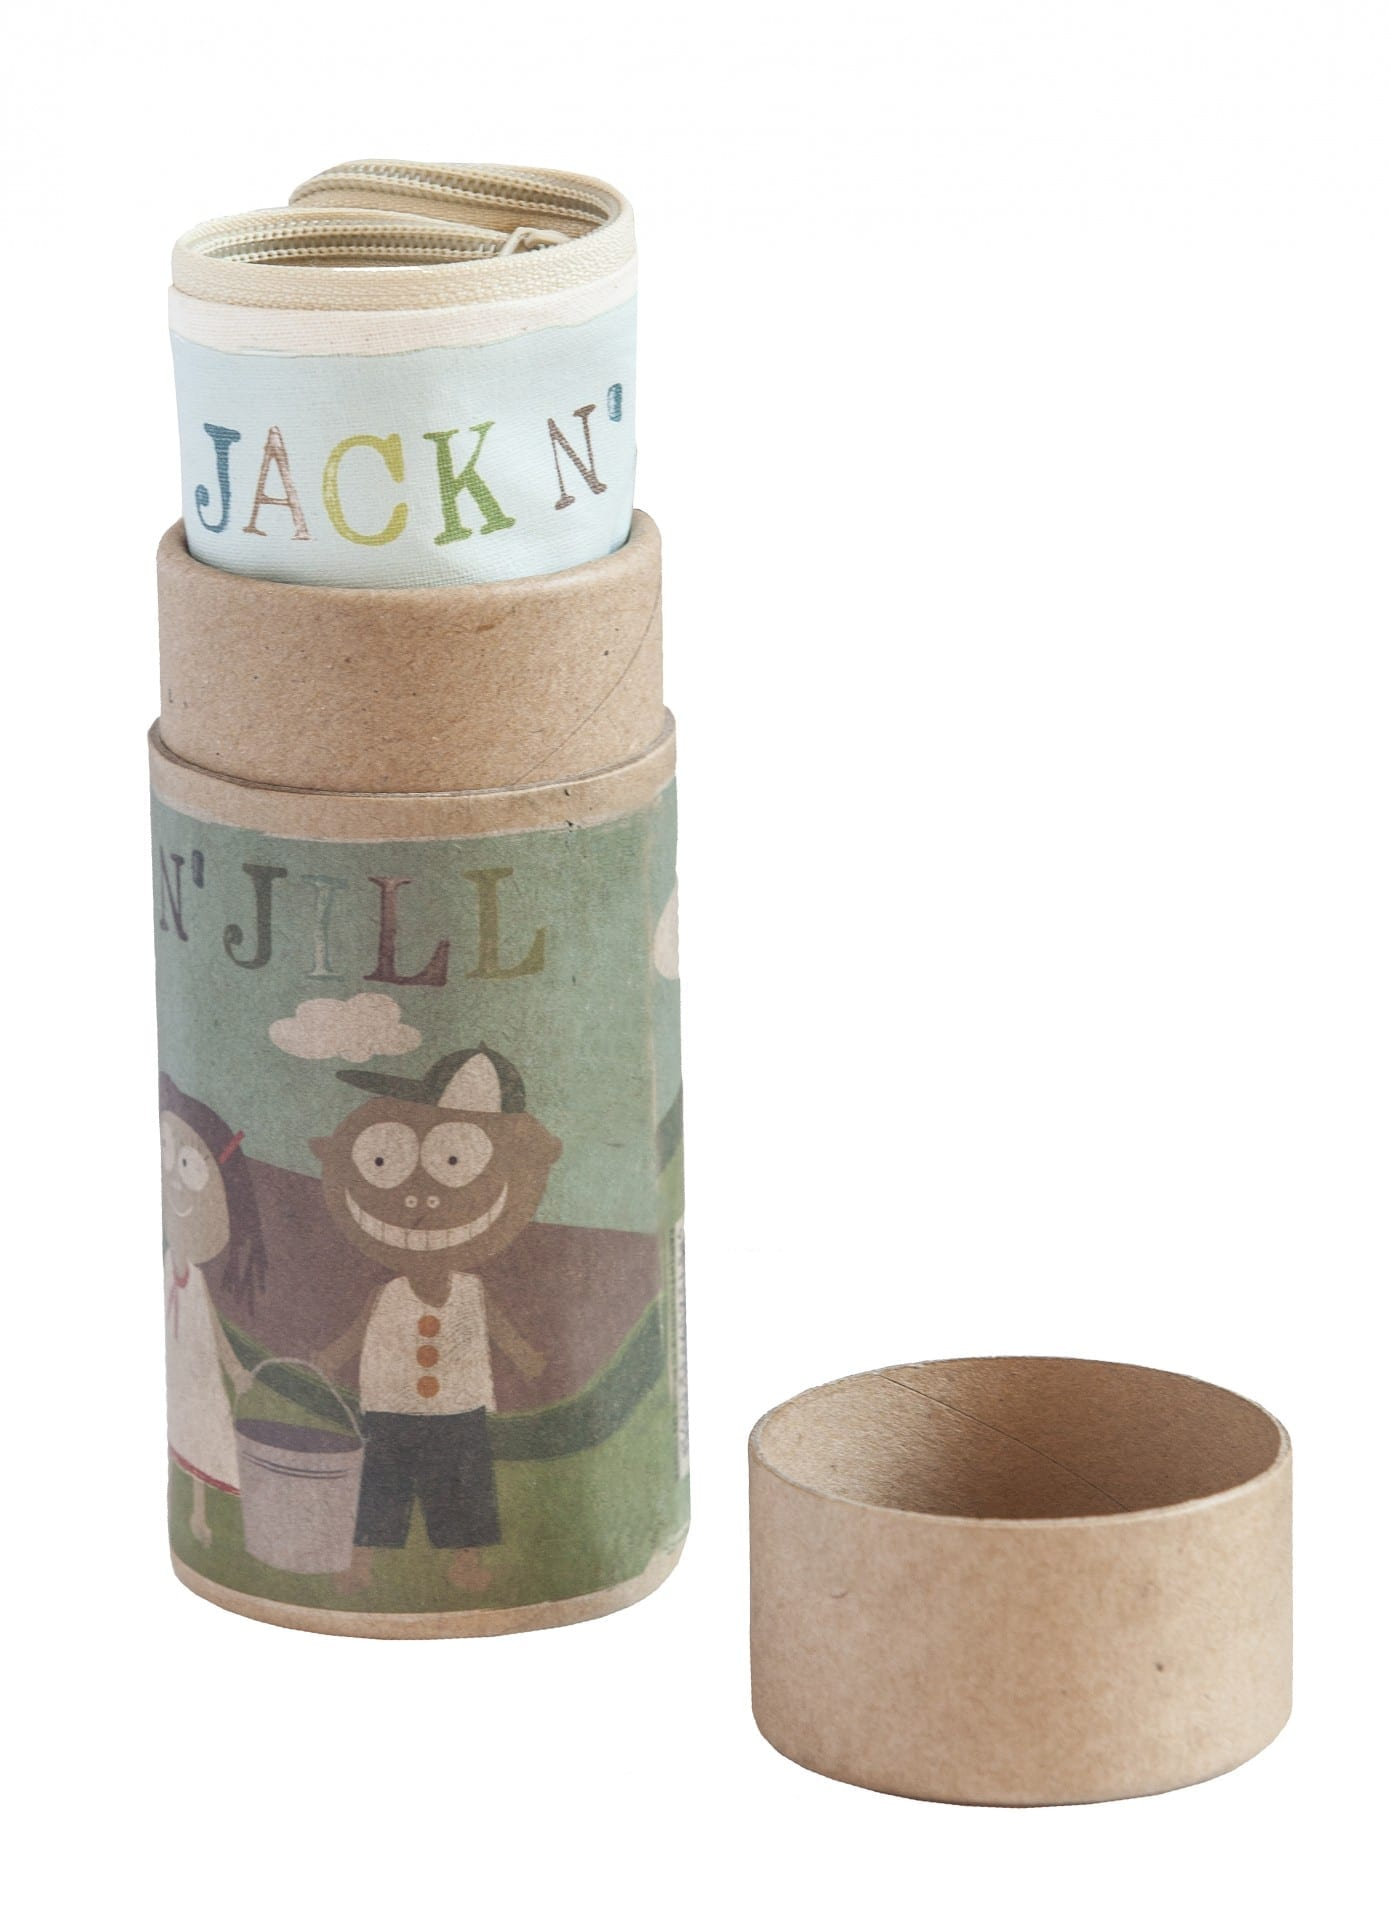 Jack N Jill Organic Kids Toothpaste Dental Care Distribution Silicone Tooth Brush Contoured Open